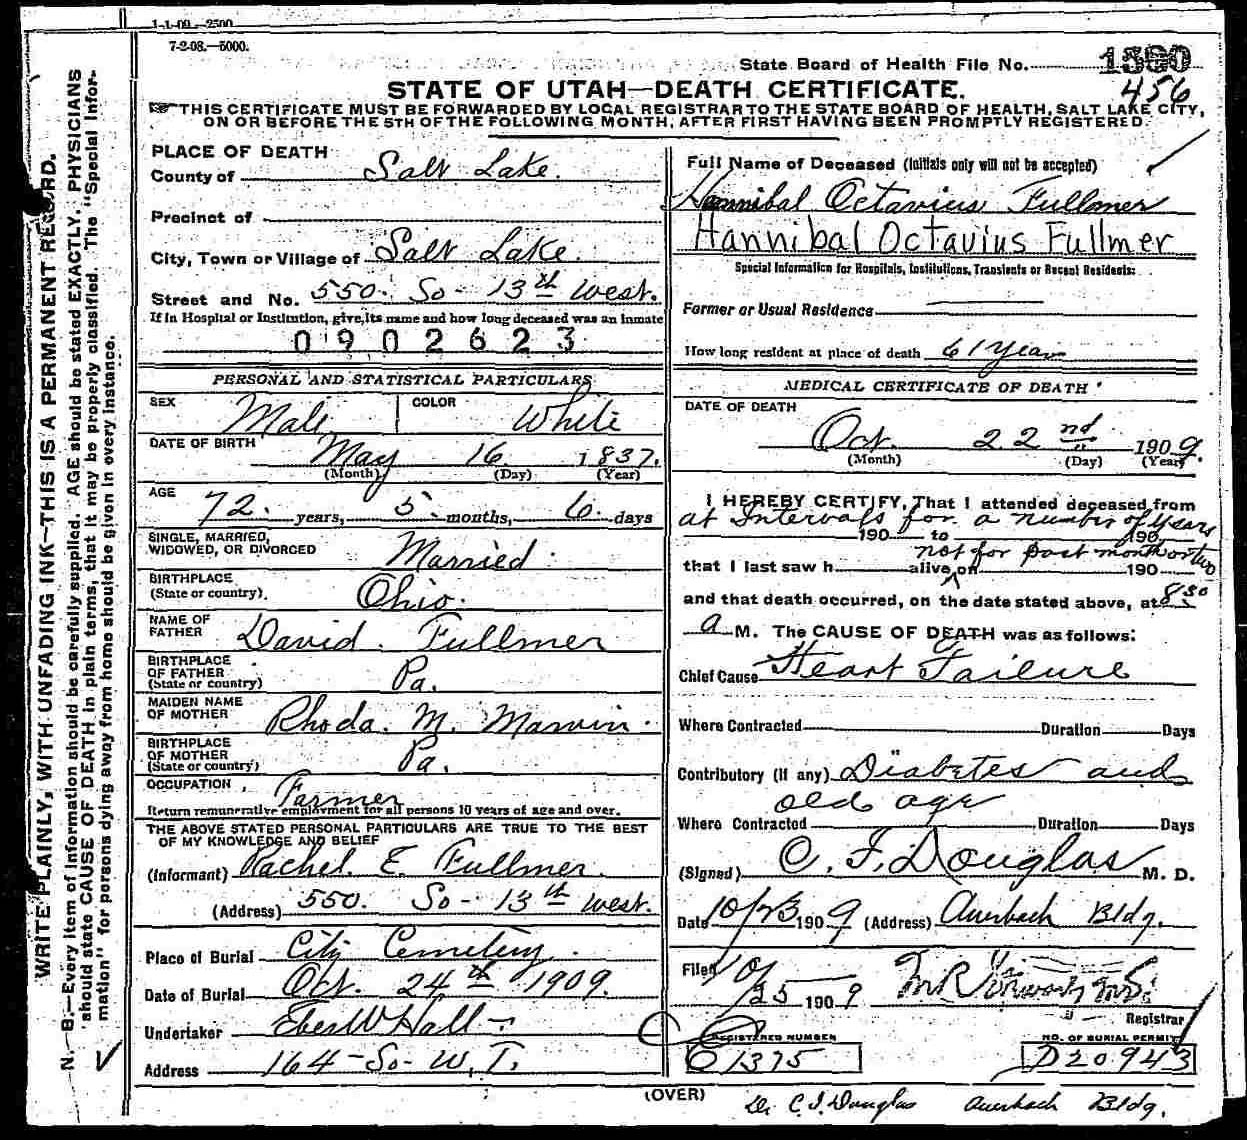 Documents hannibal octavias fullmer 1837 1909 death certificate documents hannibal octavias fullmer 1837 1909 death certificate the watson clan genealogy 1betcityfo Choice Image